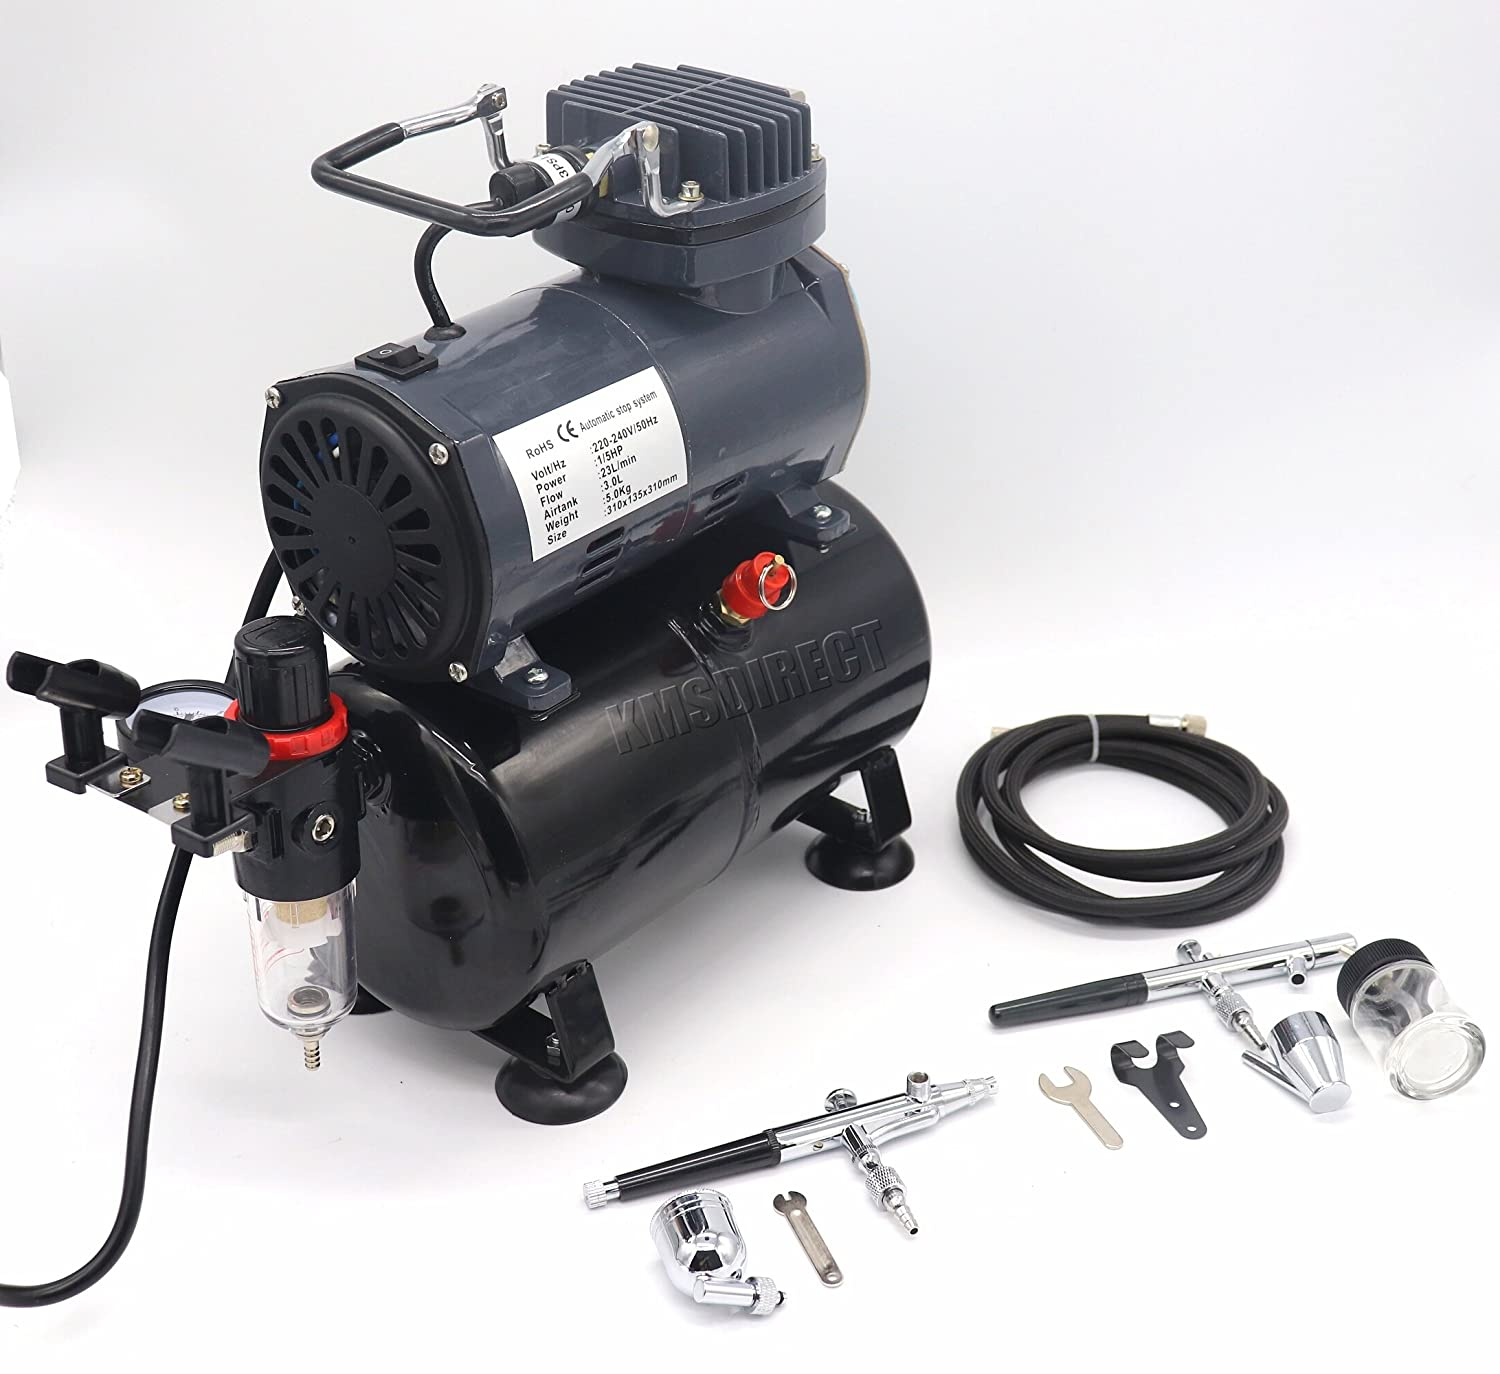 Airbrush Kit AS186 AS 186 with Compressor with Tank with 2 x Double Action Airbrushes and Hose KMS